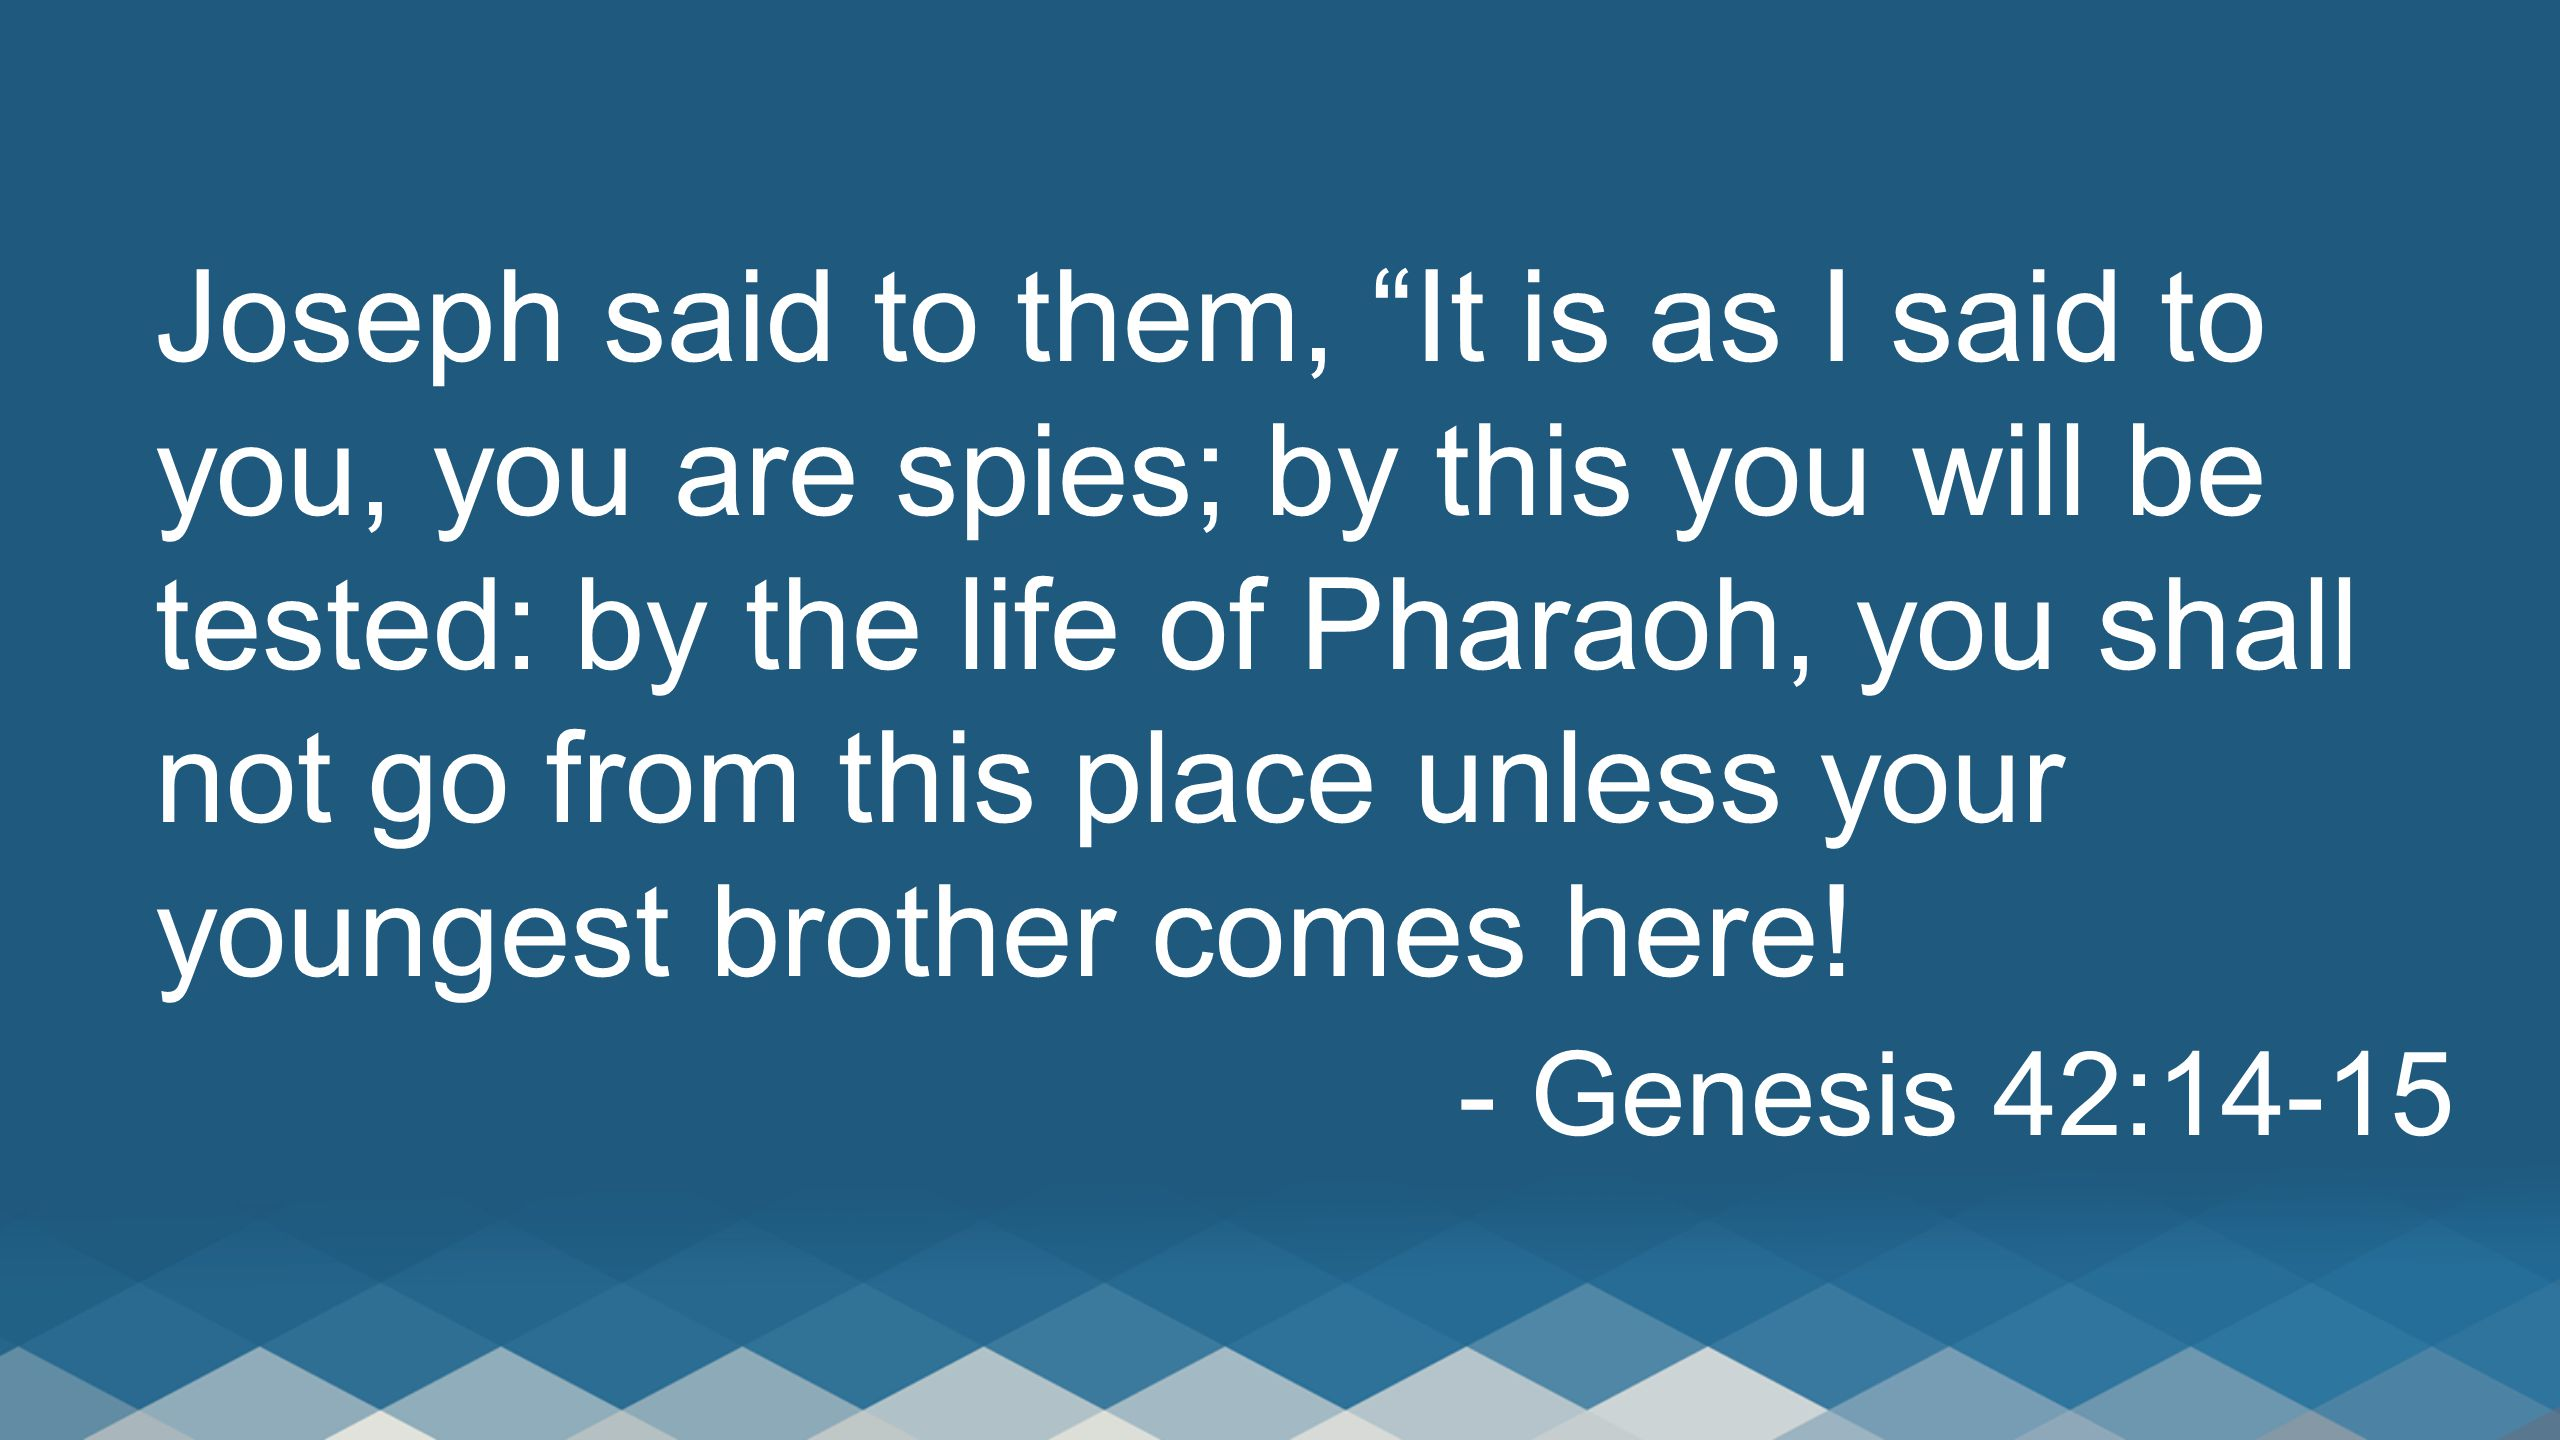 Joseph said to them, It is as I said to you, you are spies; by this you will be tested: by the life of Pharaoh, you shall not go from this place unless your youngest brother comes here!